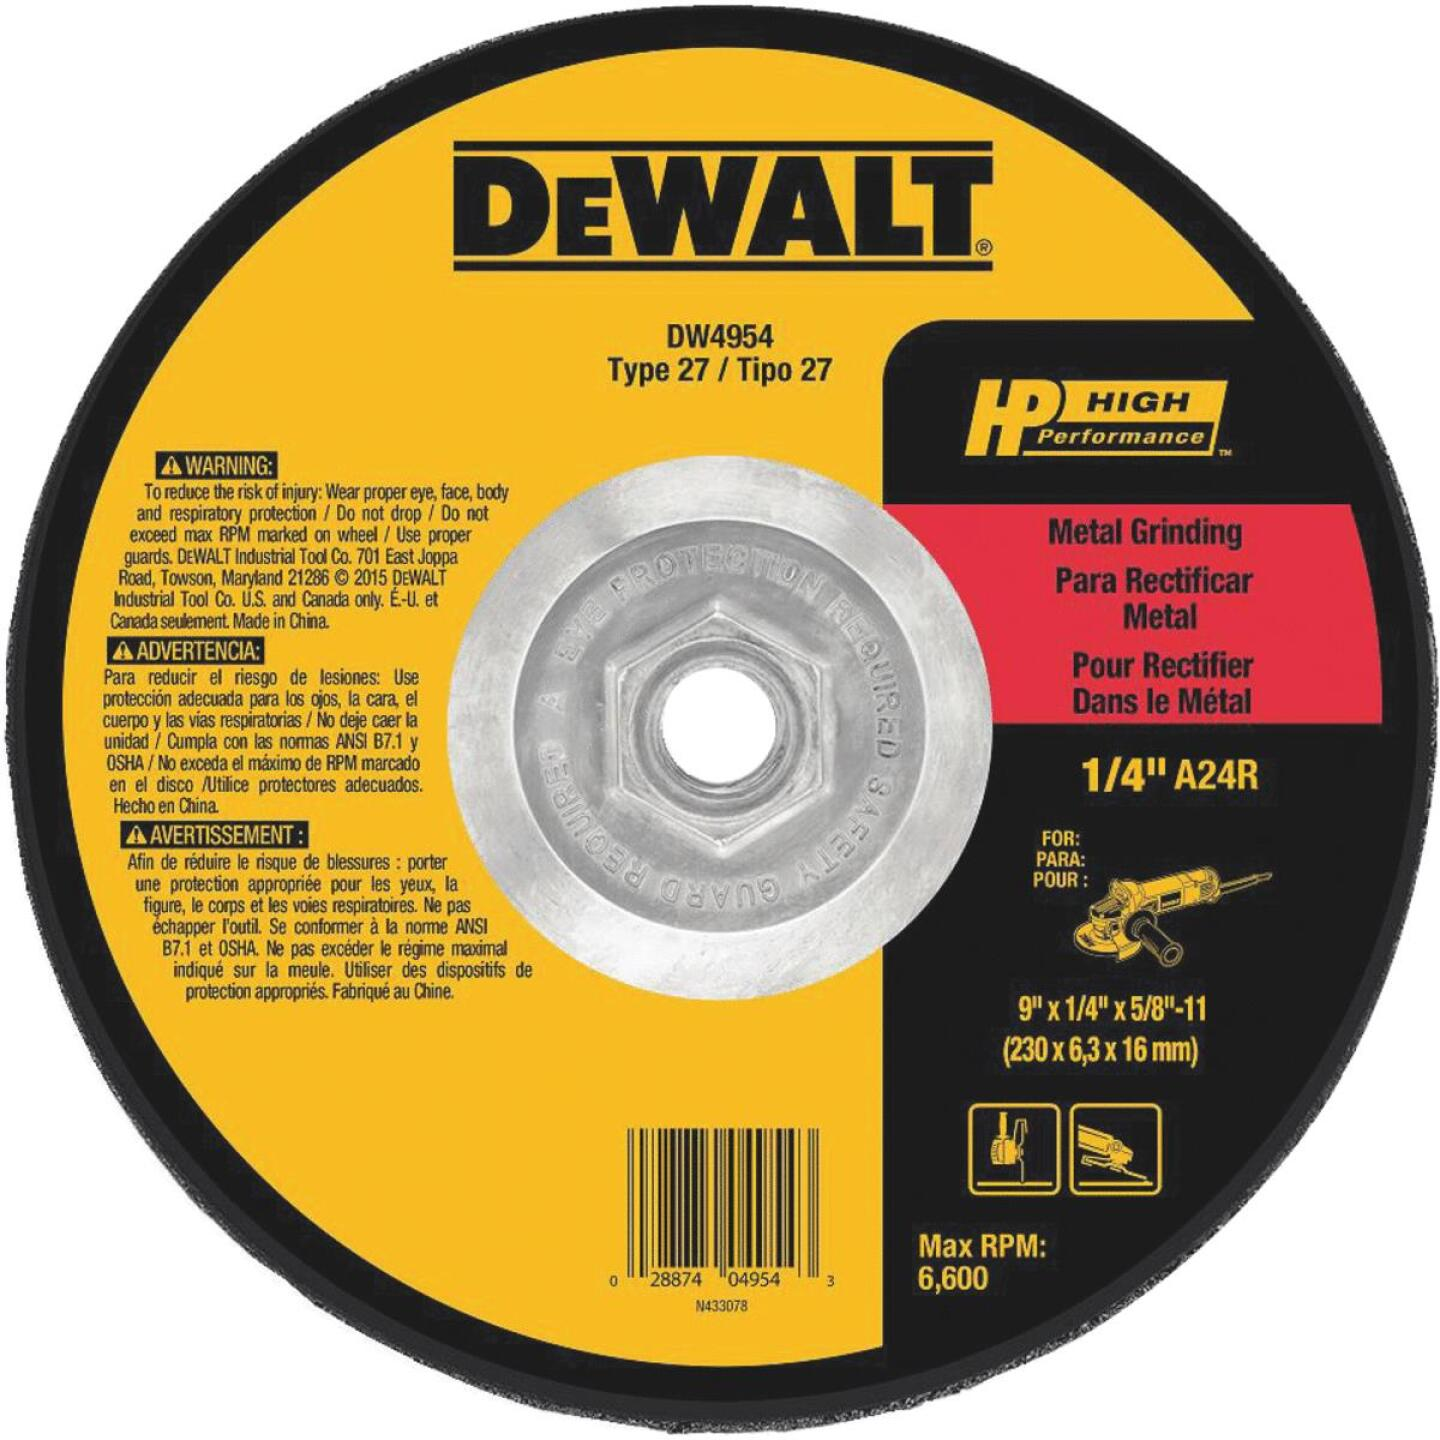 DeWalt HP Type 27 9 In. x 1/4 In. x 5/8 In.-11 Metal Grinding Cut-Off Wheel Image 1